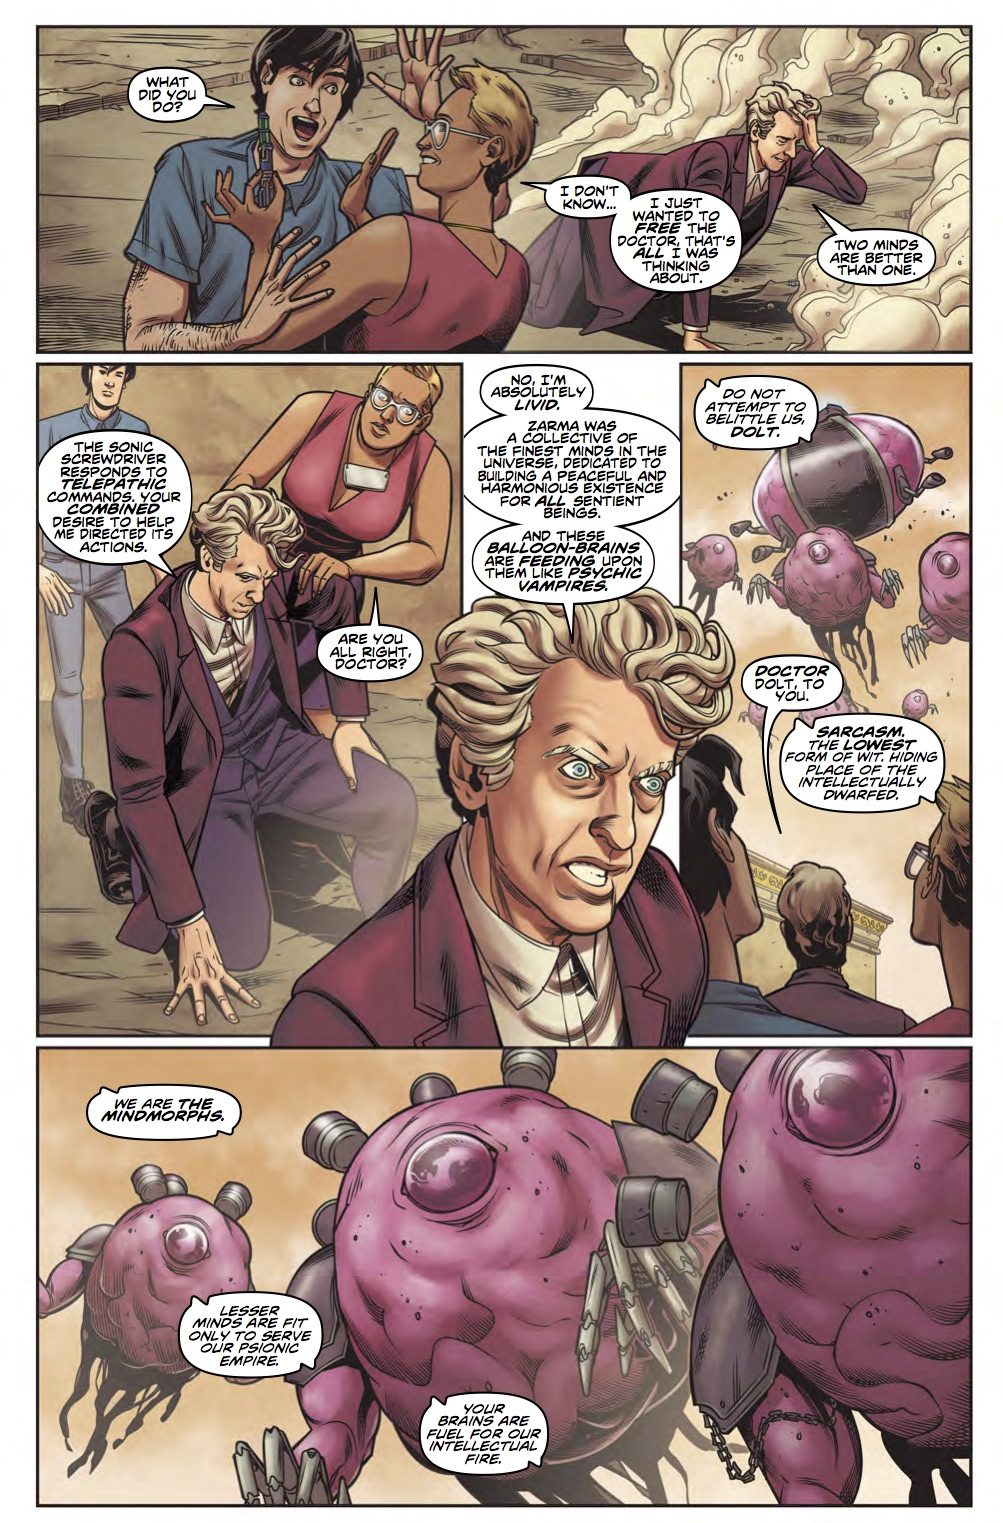 Doctor Who: Twelfth Doctor #2.15